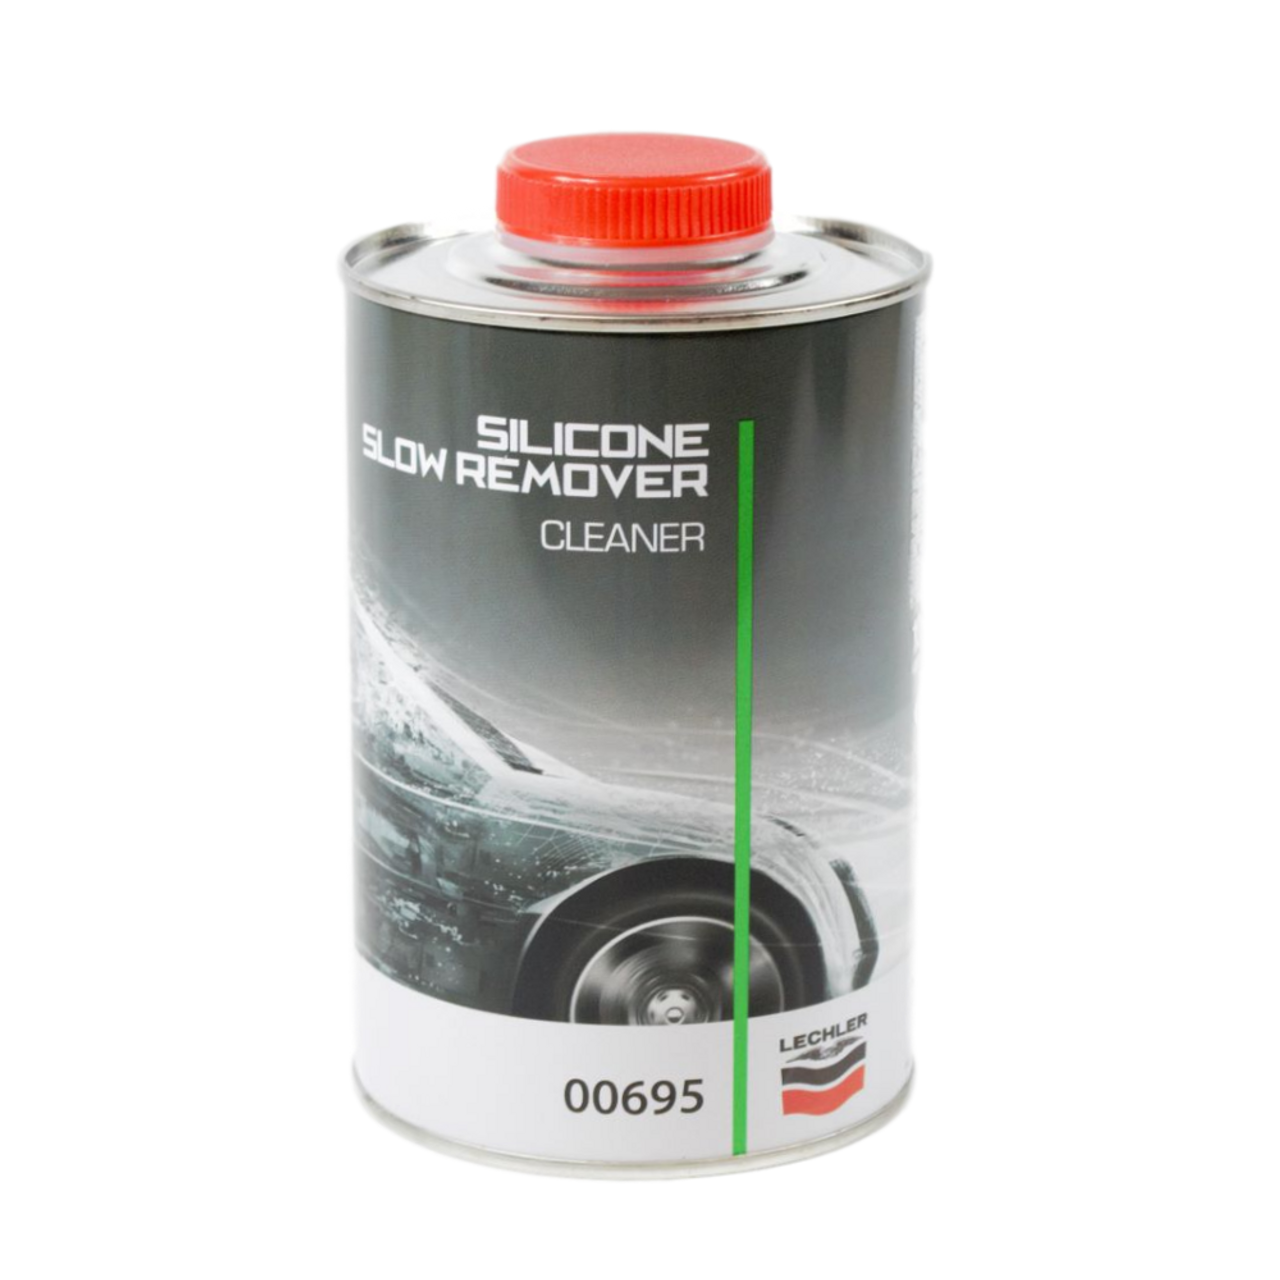 Lechler 00695 Silicone Remover Slow 1.0L